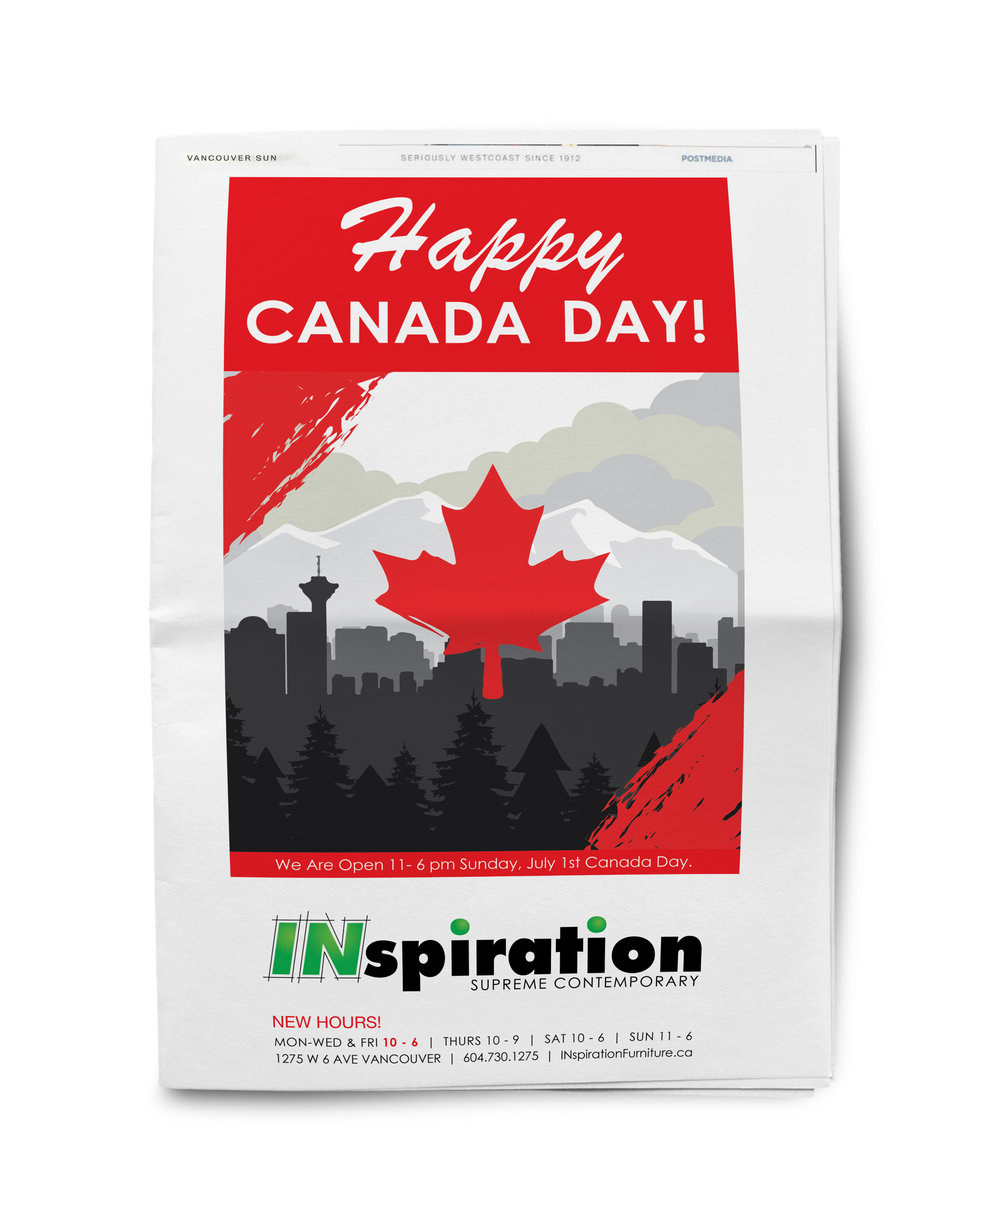 INspiration_Vancouver_Newspaper16.jpg